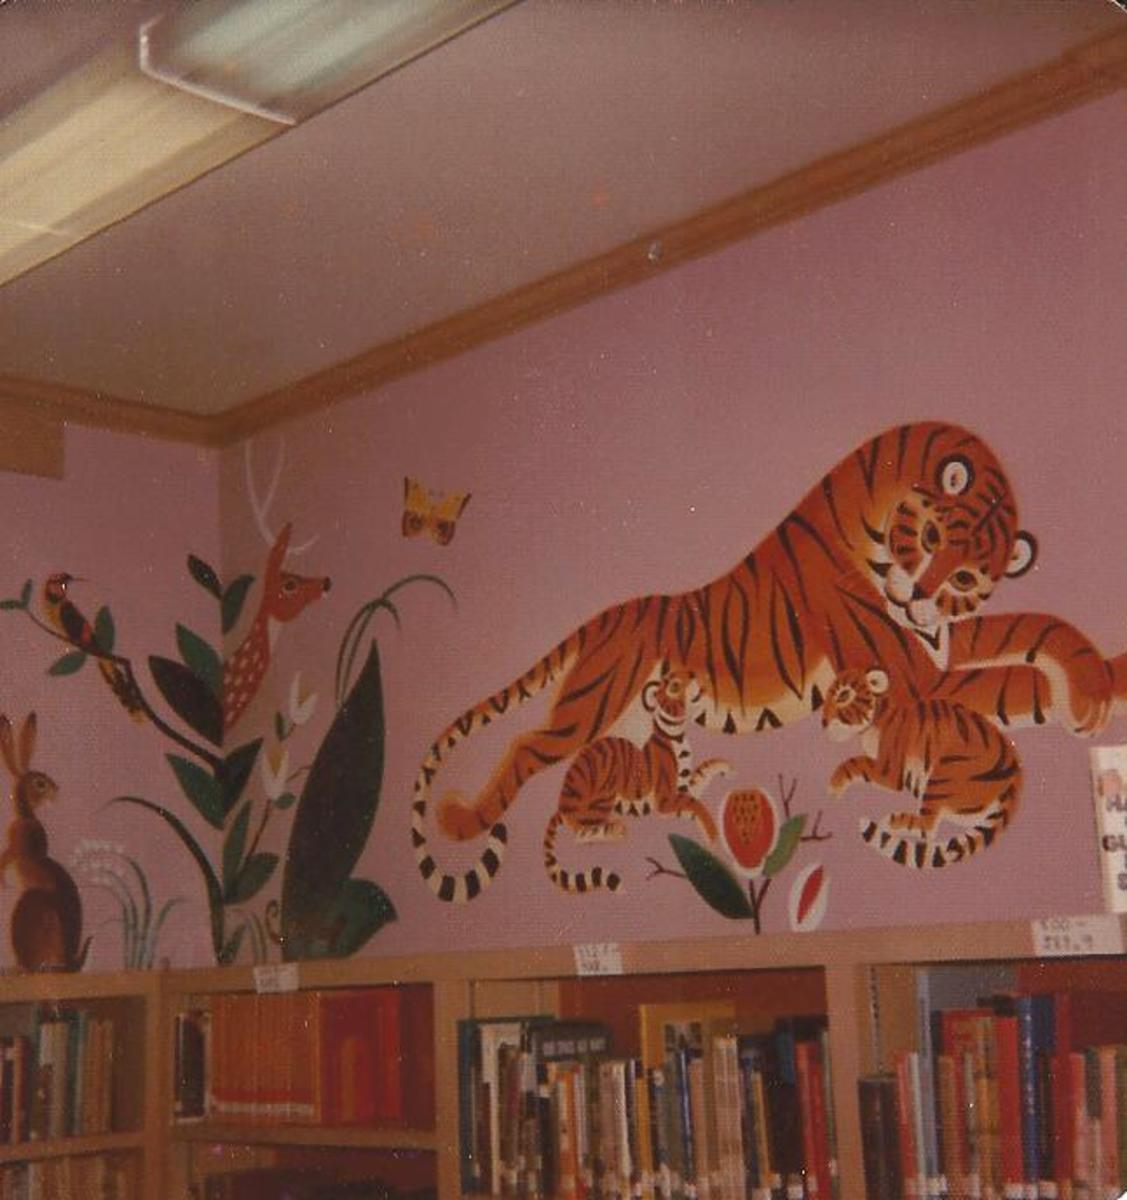 This noted artist from Maine decorated the children's room in this memorable way. Take a look on Amazon to see the wonderful books she illustrated.